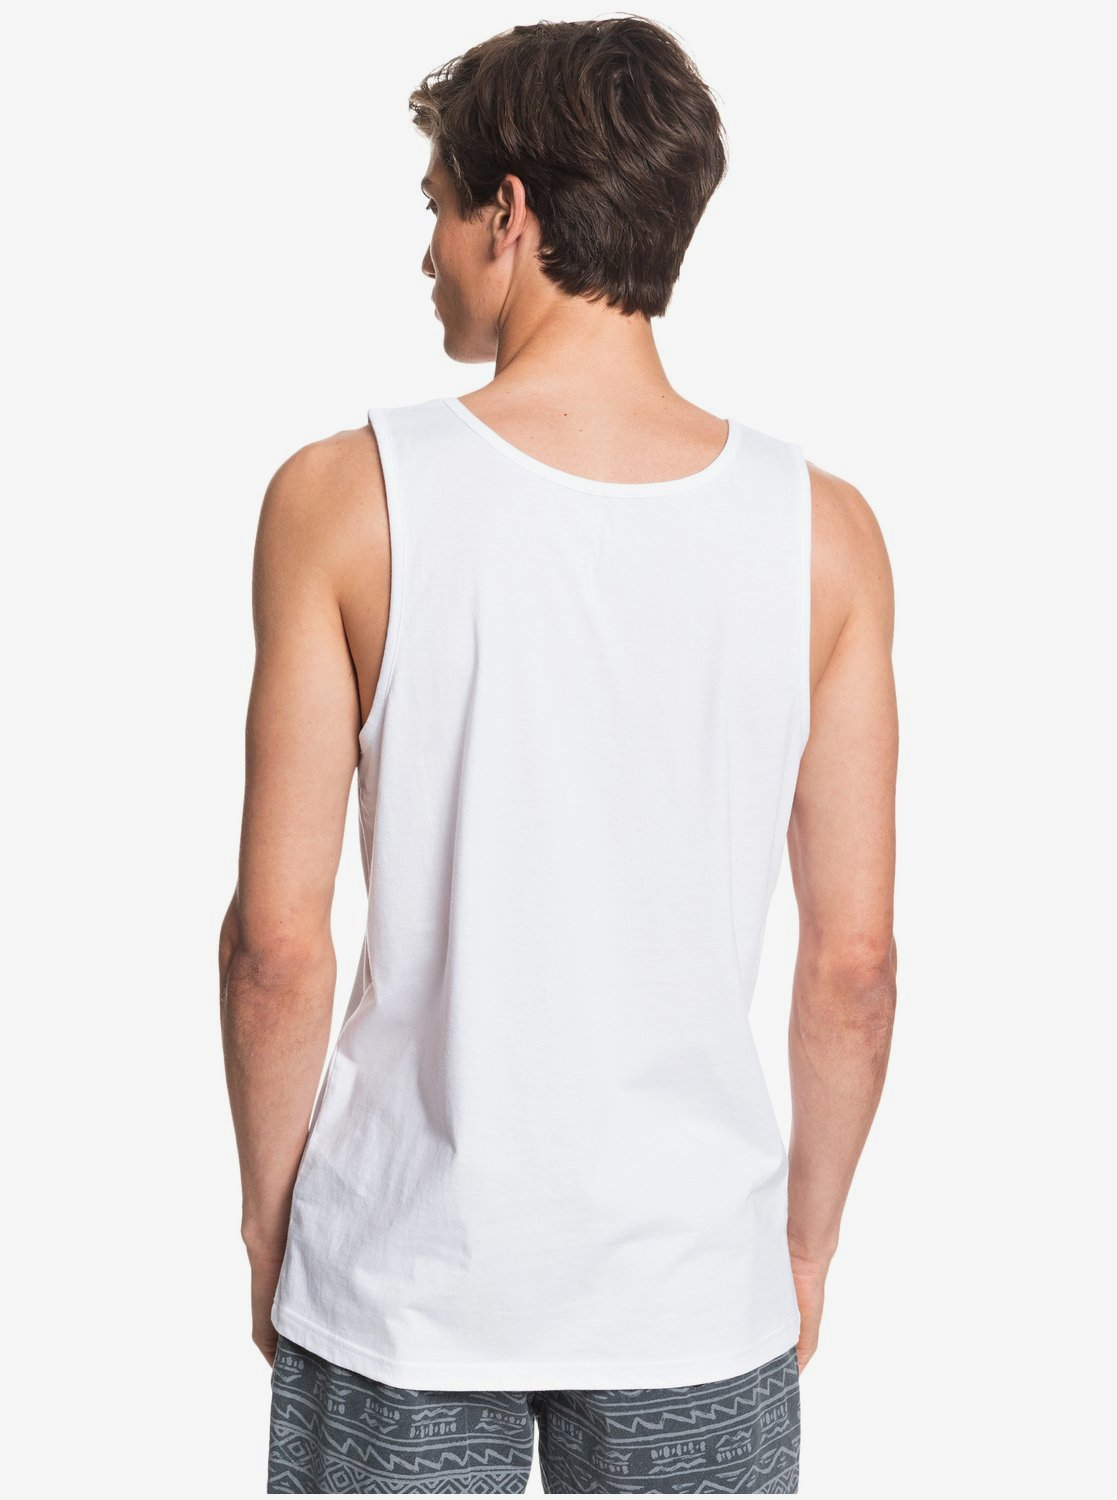 Майка мужская QUIKSILVER DRIFT AWAY White. Фото N2